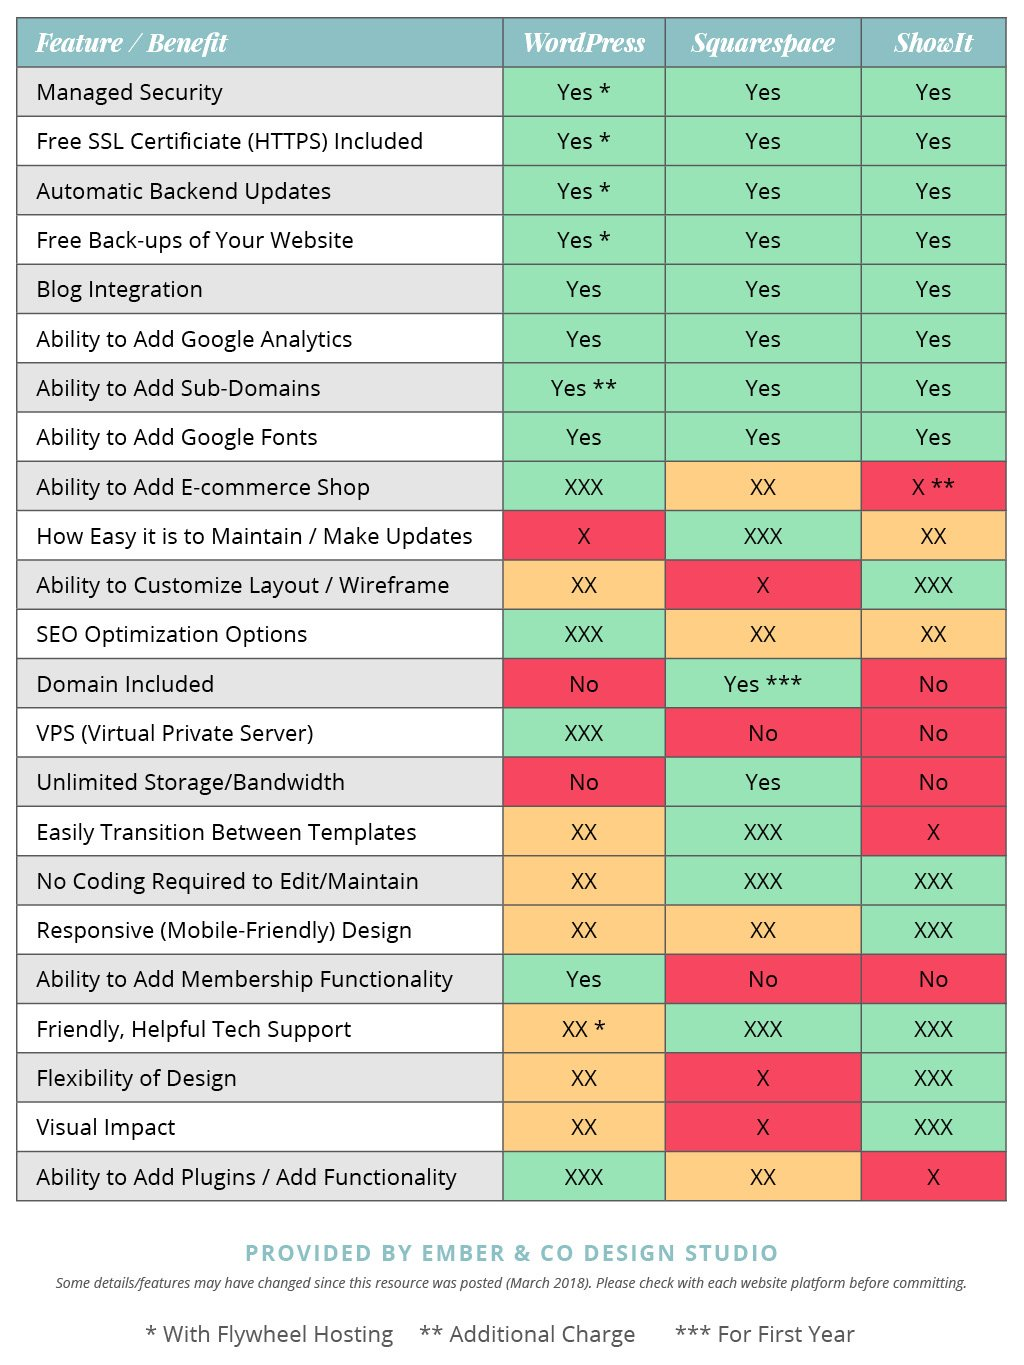 A Features / Benefits Breakdown Comparison Chart of WordPress, Squarespace, and ShowIt Website Building Platforms   WordPress vs. Squarespace vs. ShowIt by Ember & Co Design Studio